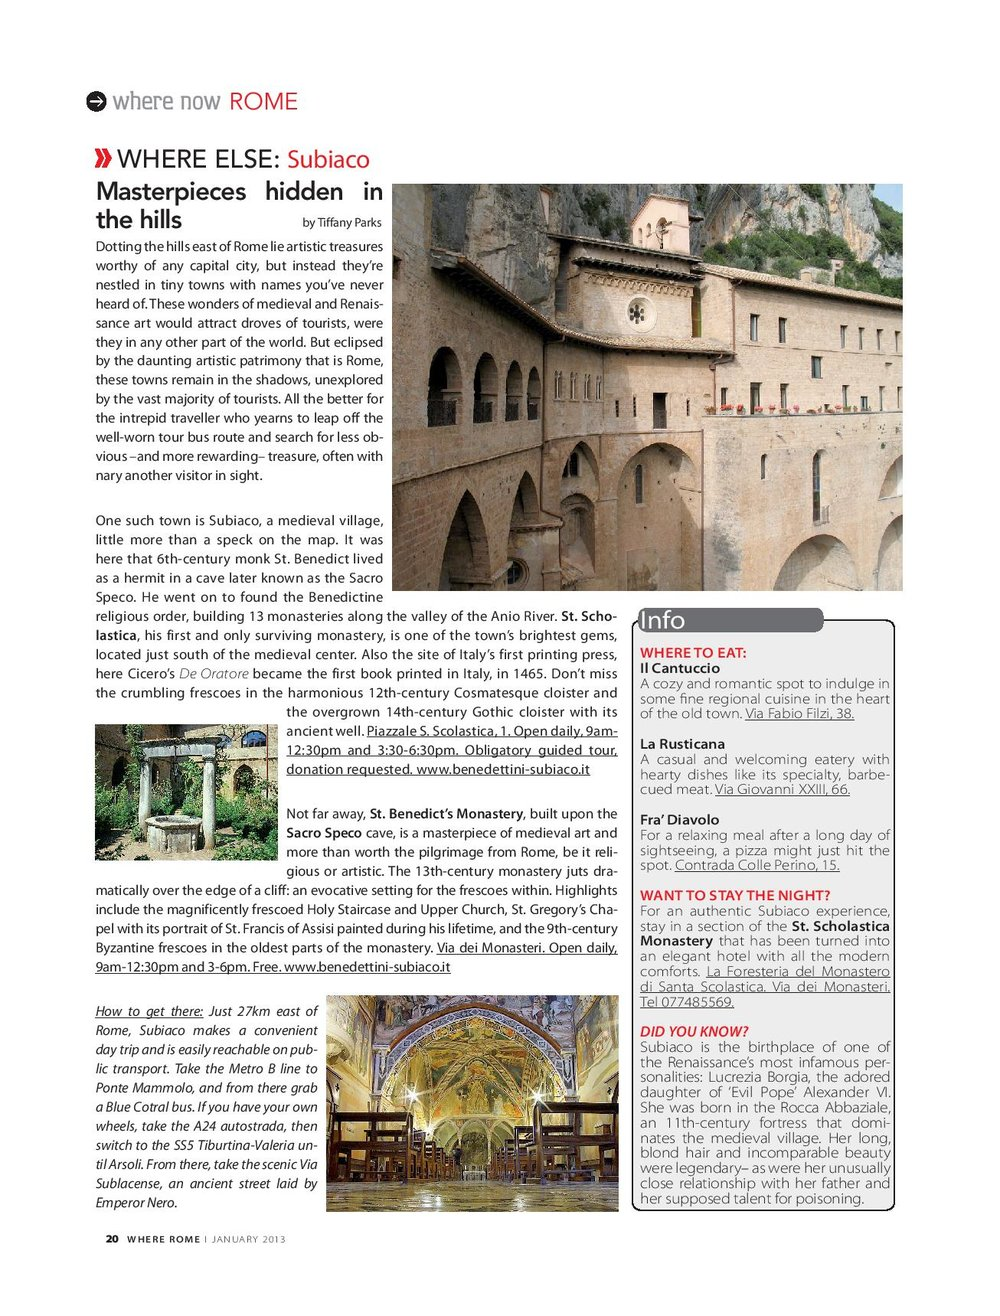 WhereElse Subiaco, January 2013-page-001.jpg